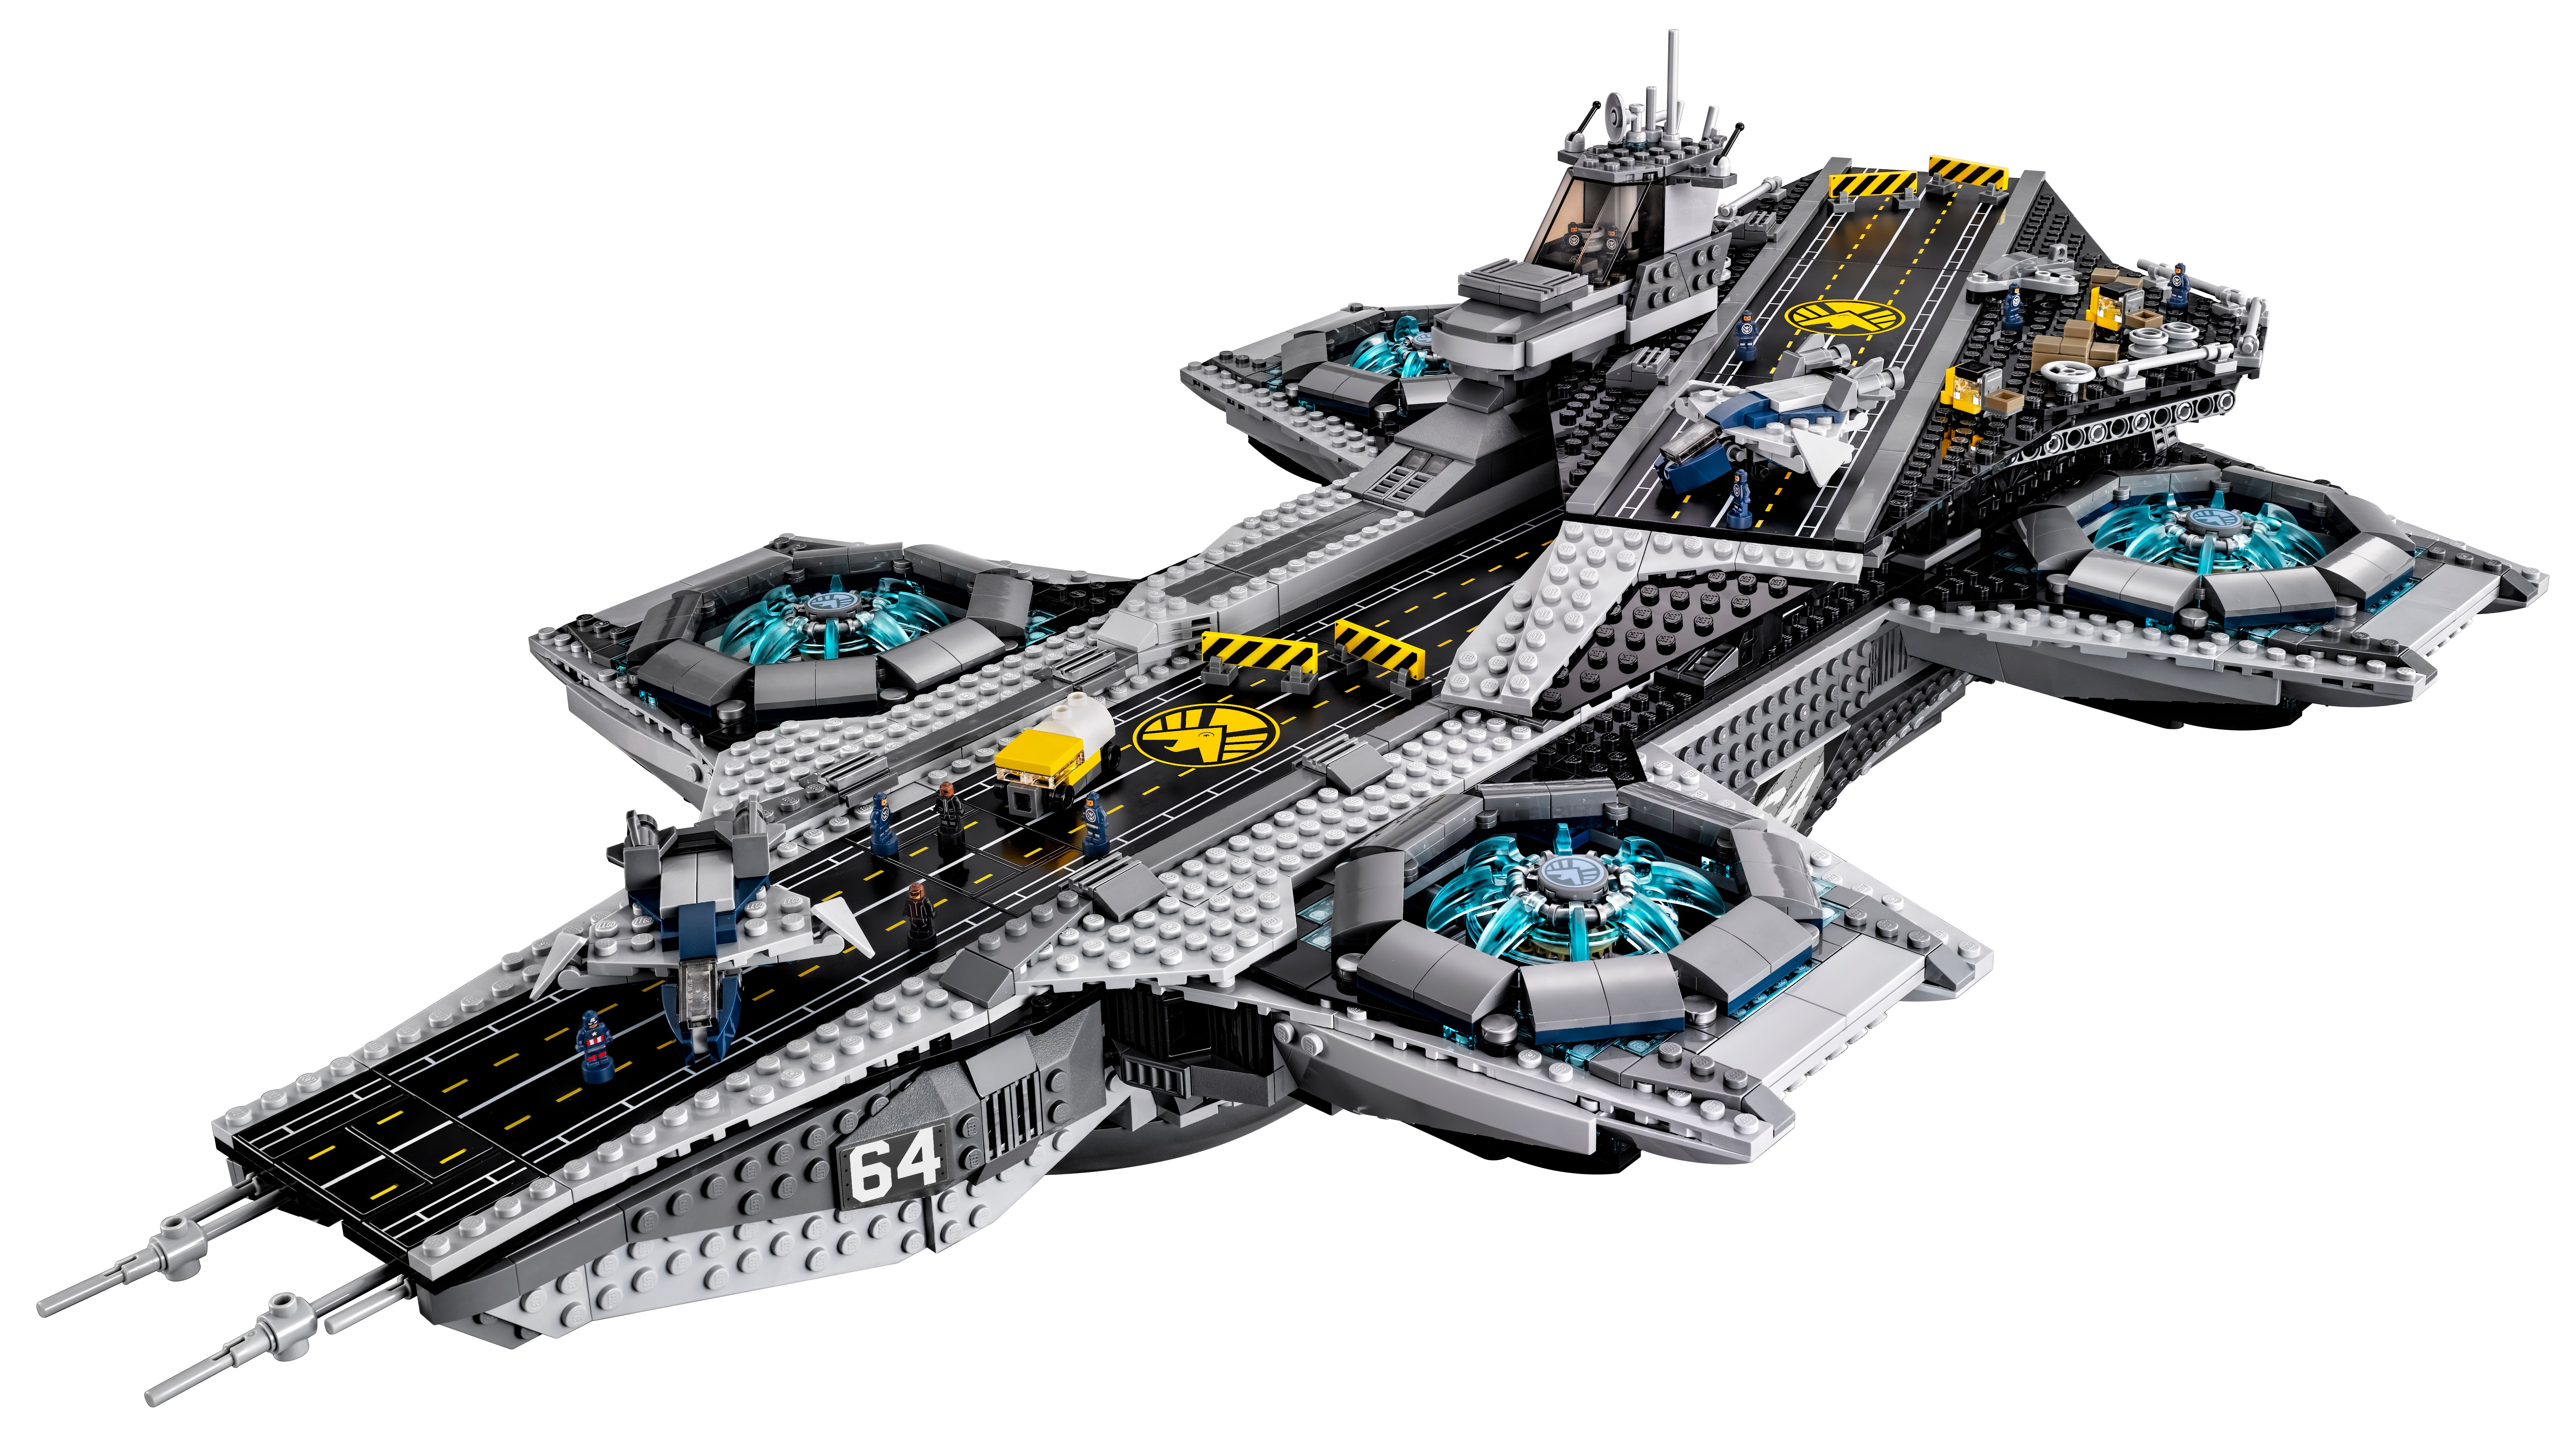 Lego Helicarrier Revealed First Images Of Avengers S H I